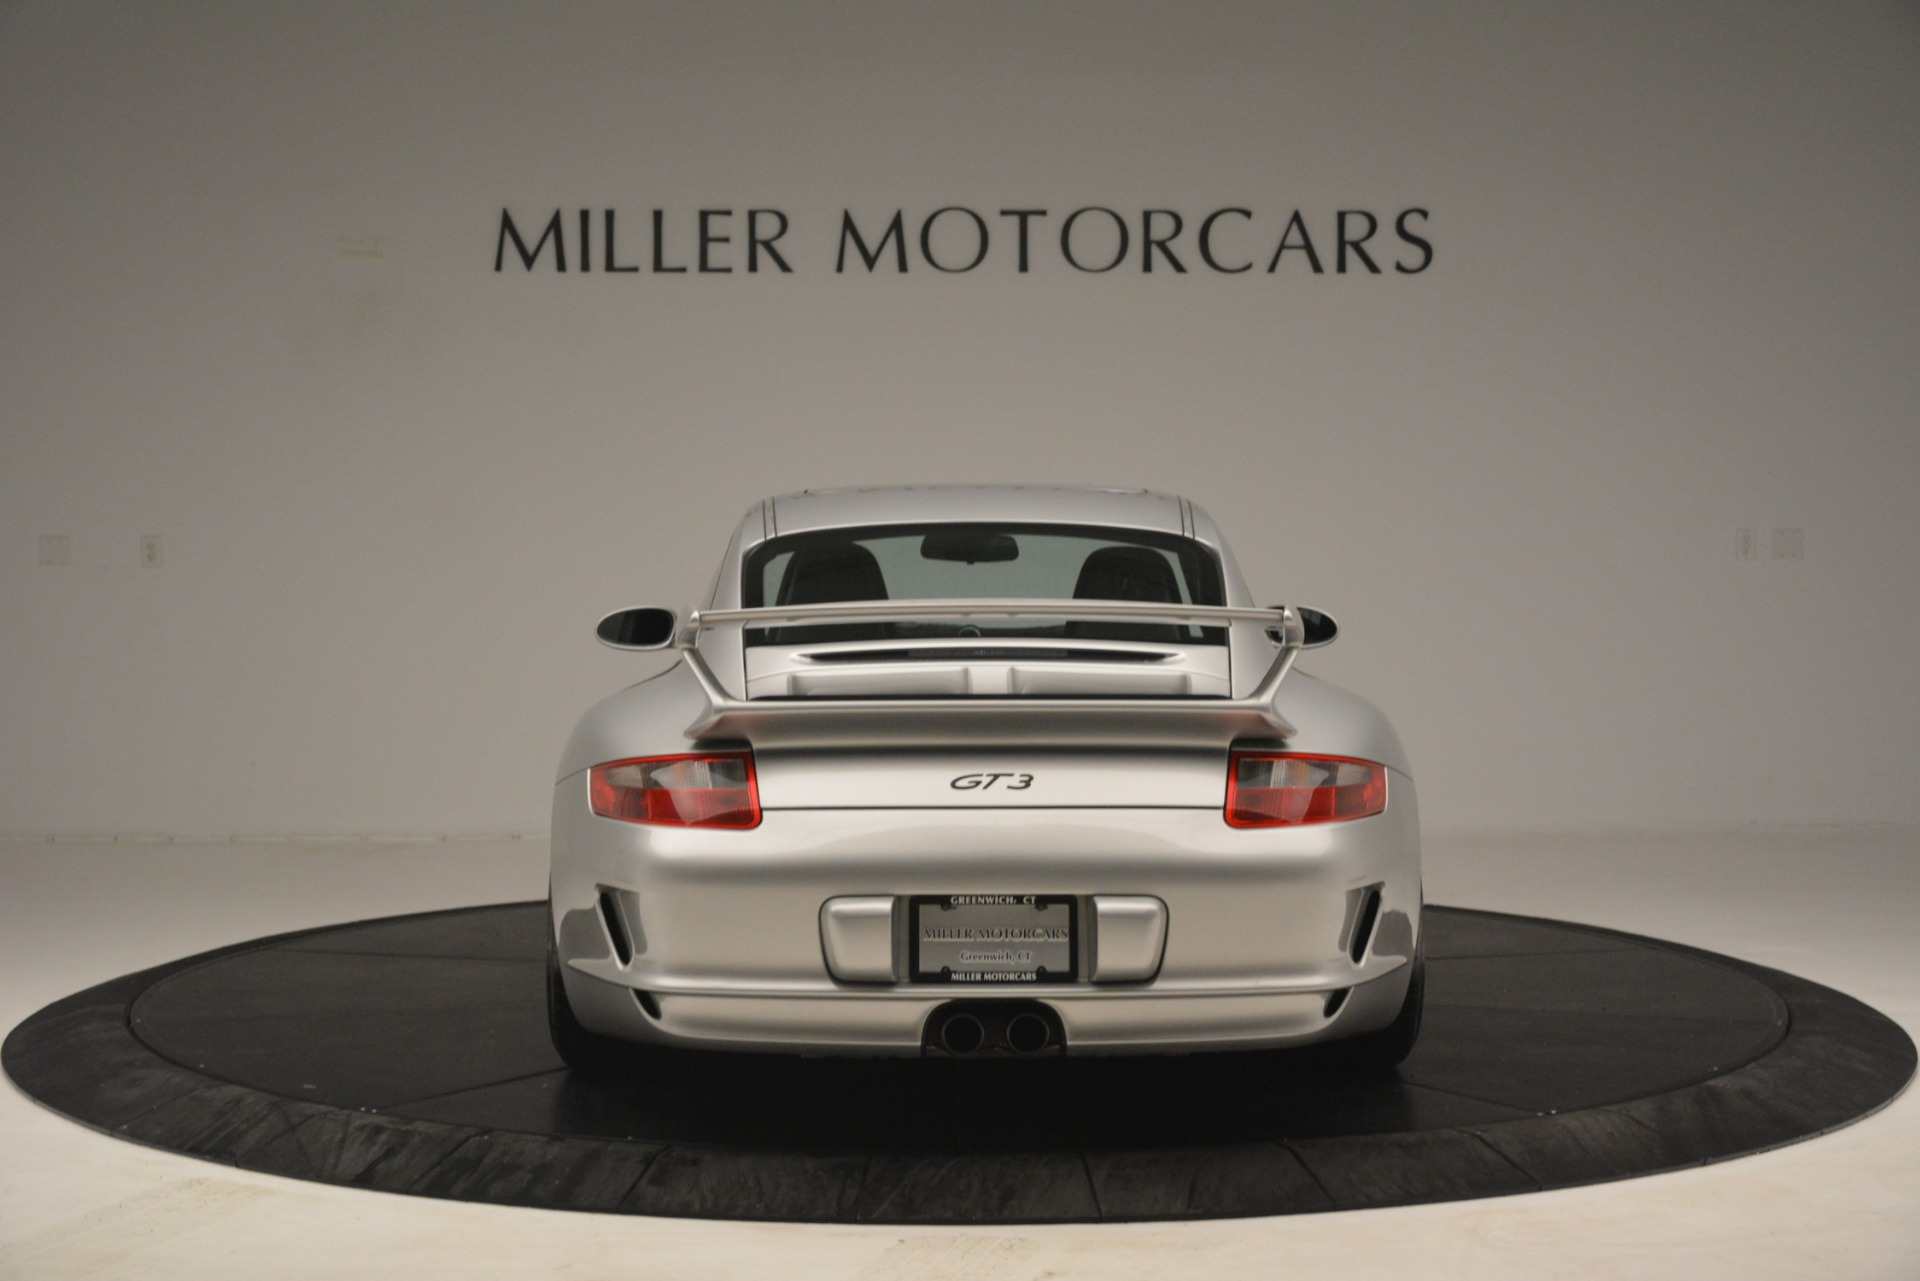 Used 2007 Porsche 911 GT3 For Sale In Greenwich, CT 3120_p6